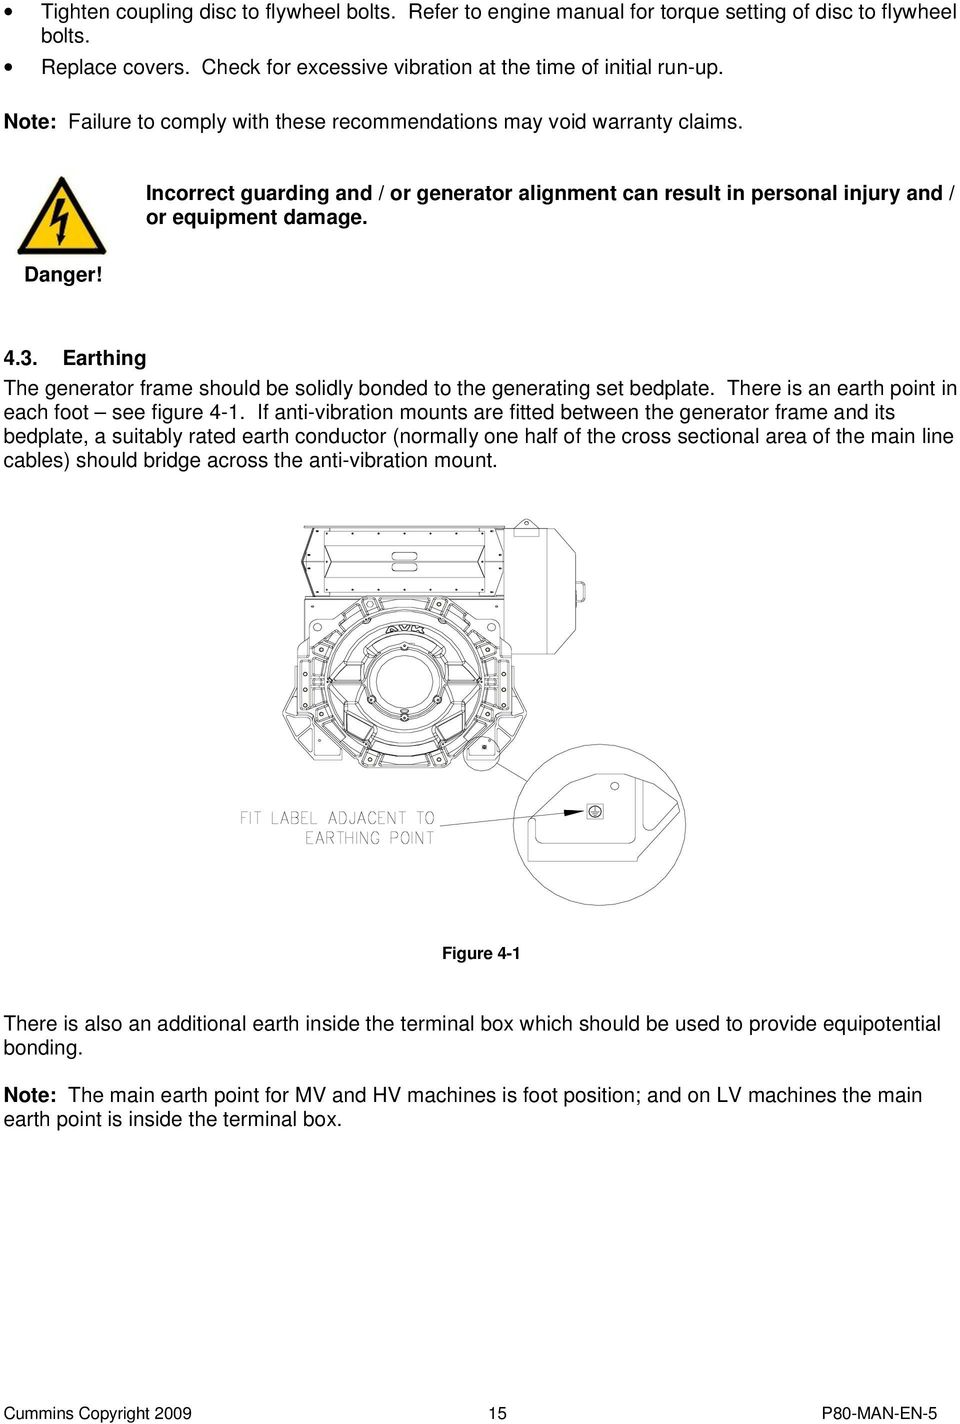 Snap Stamford Alternator Wiring Diagram Generator Ac Windings